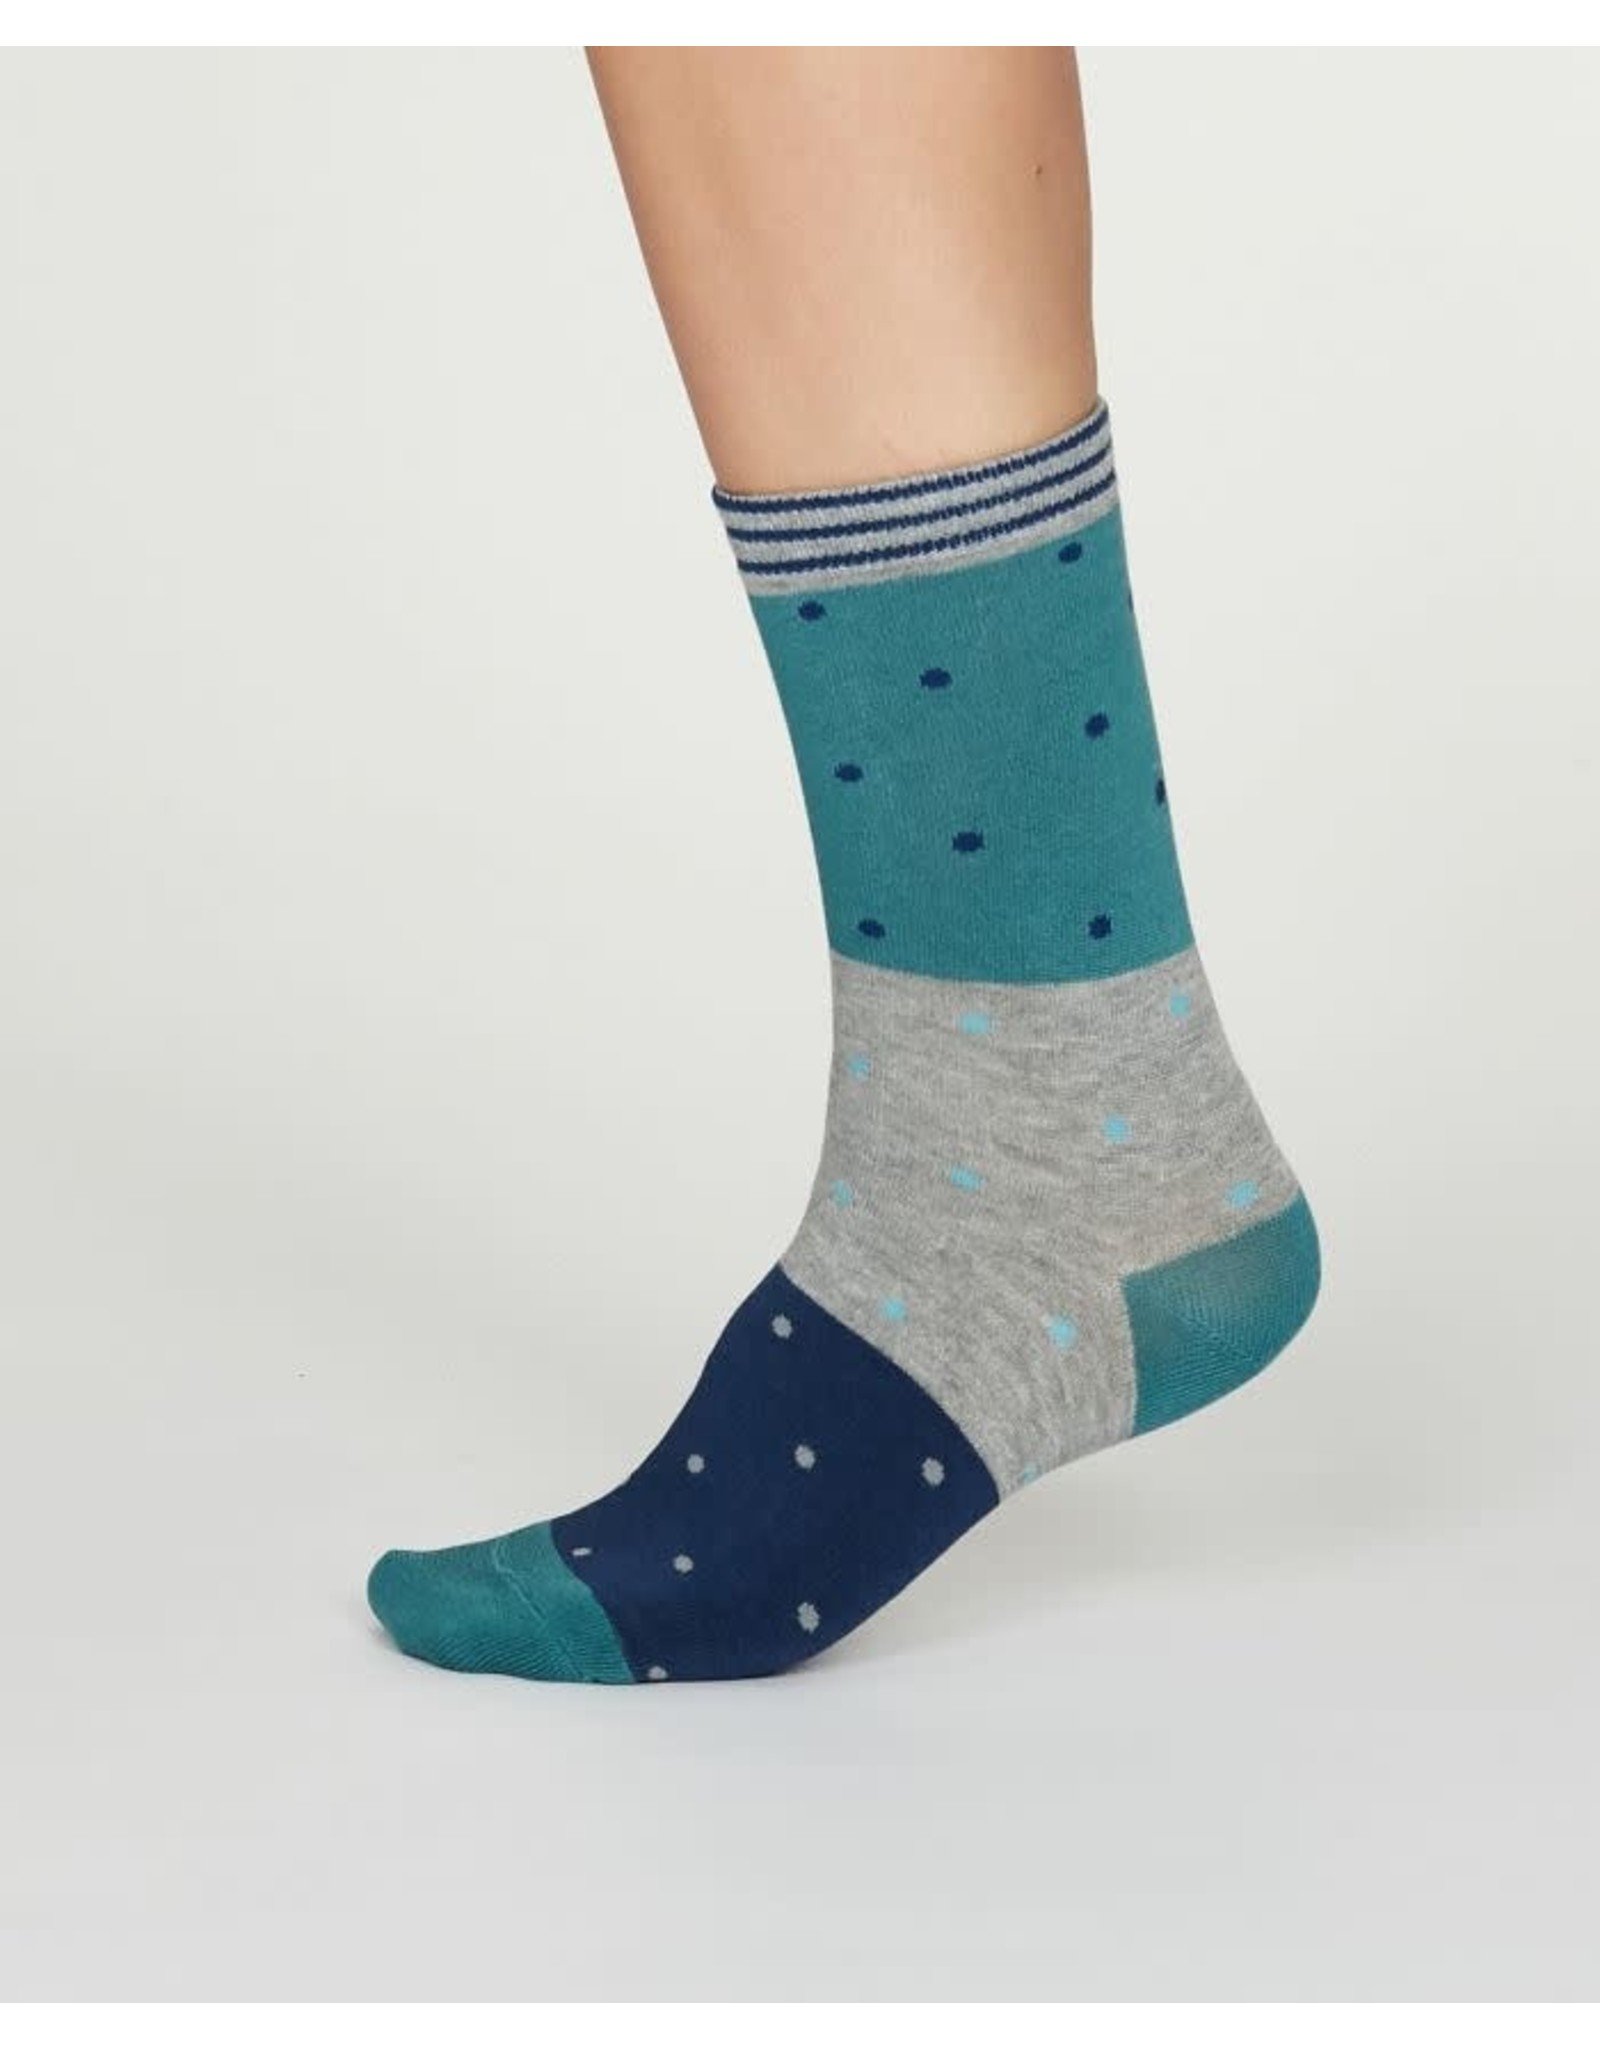 Thought Thought Mercy Socks